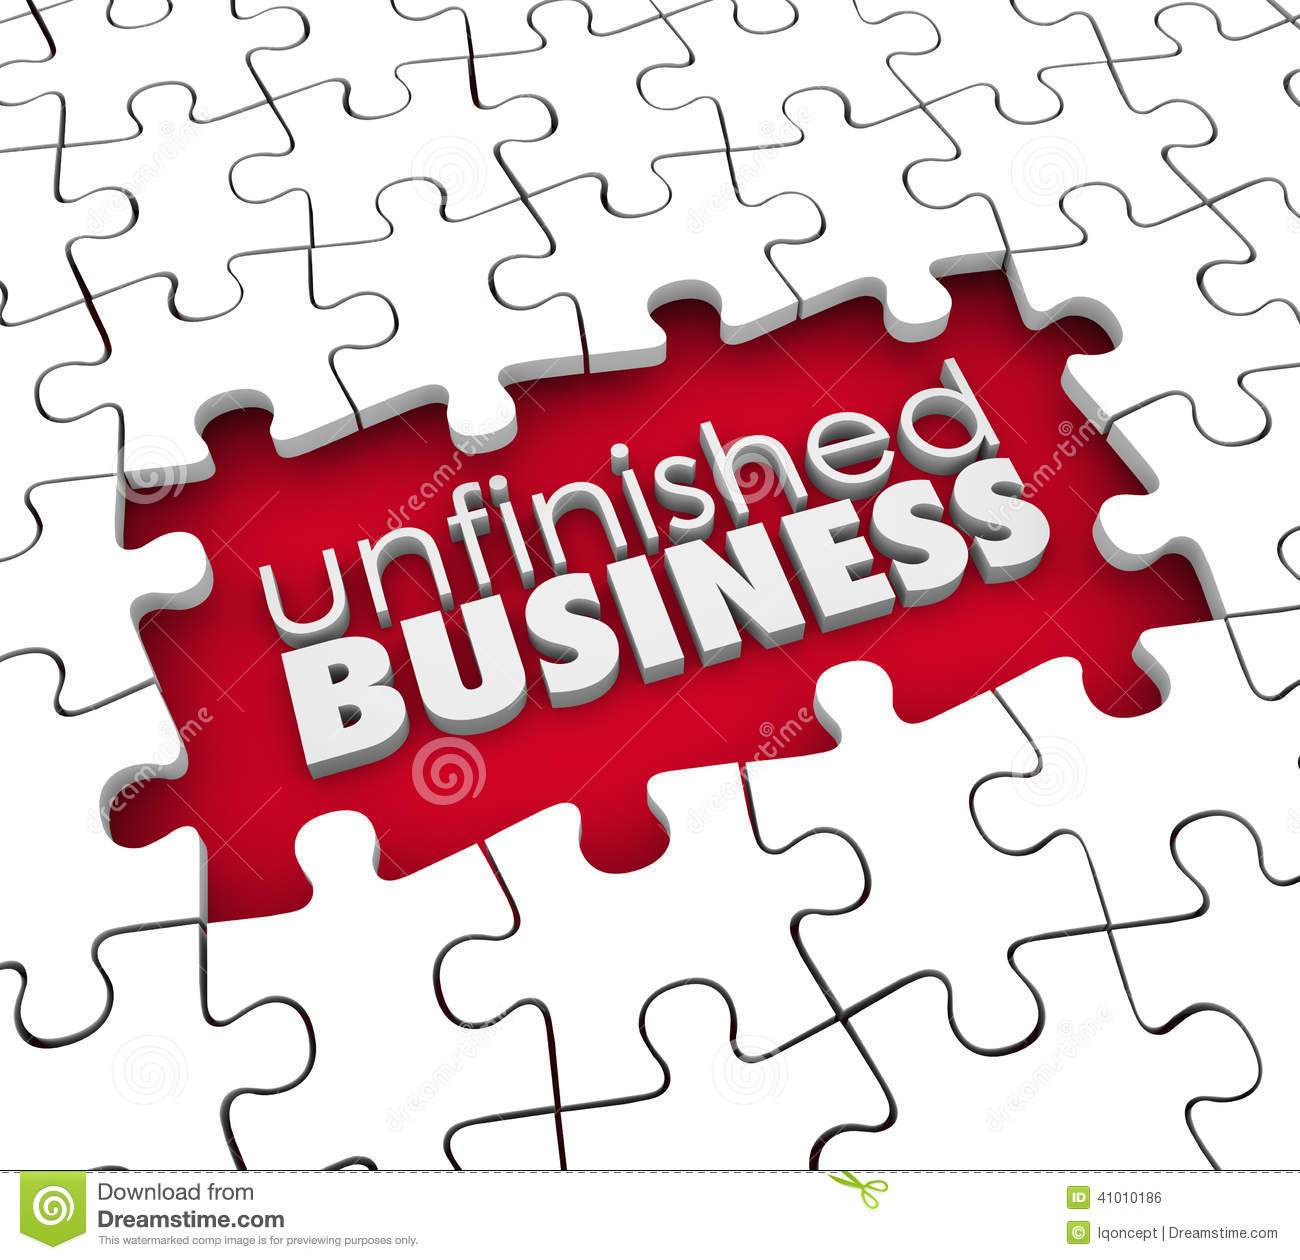 Unfinished business clipart.